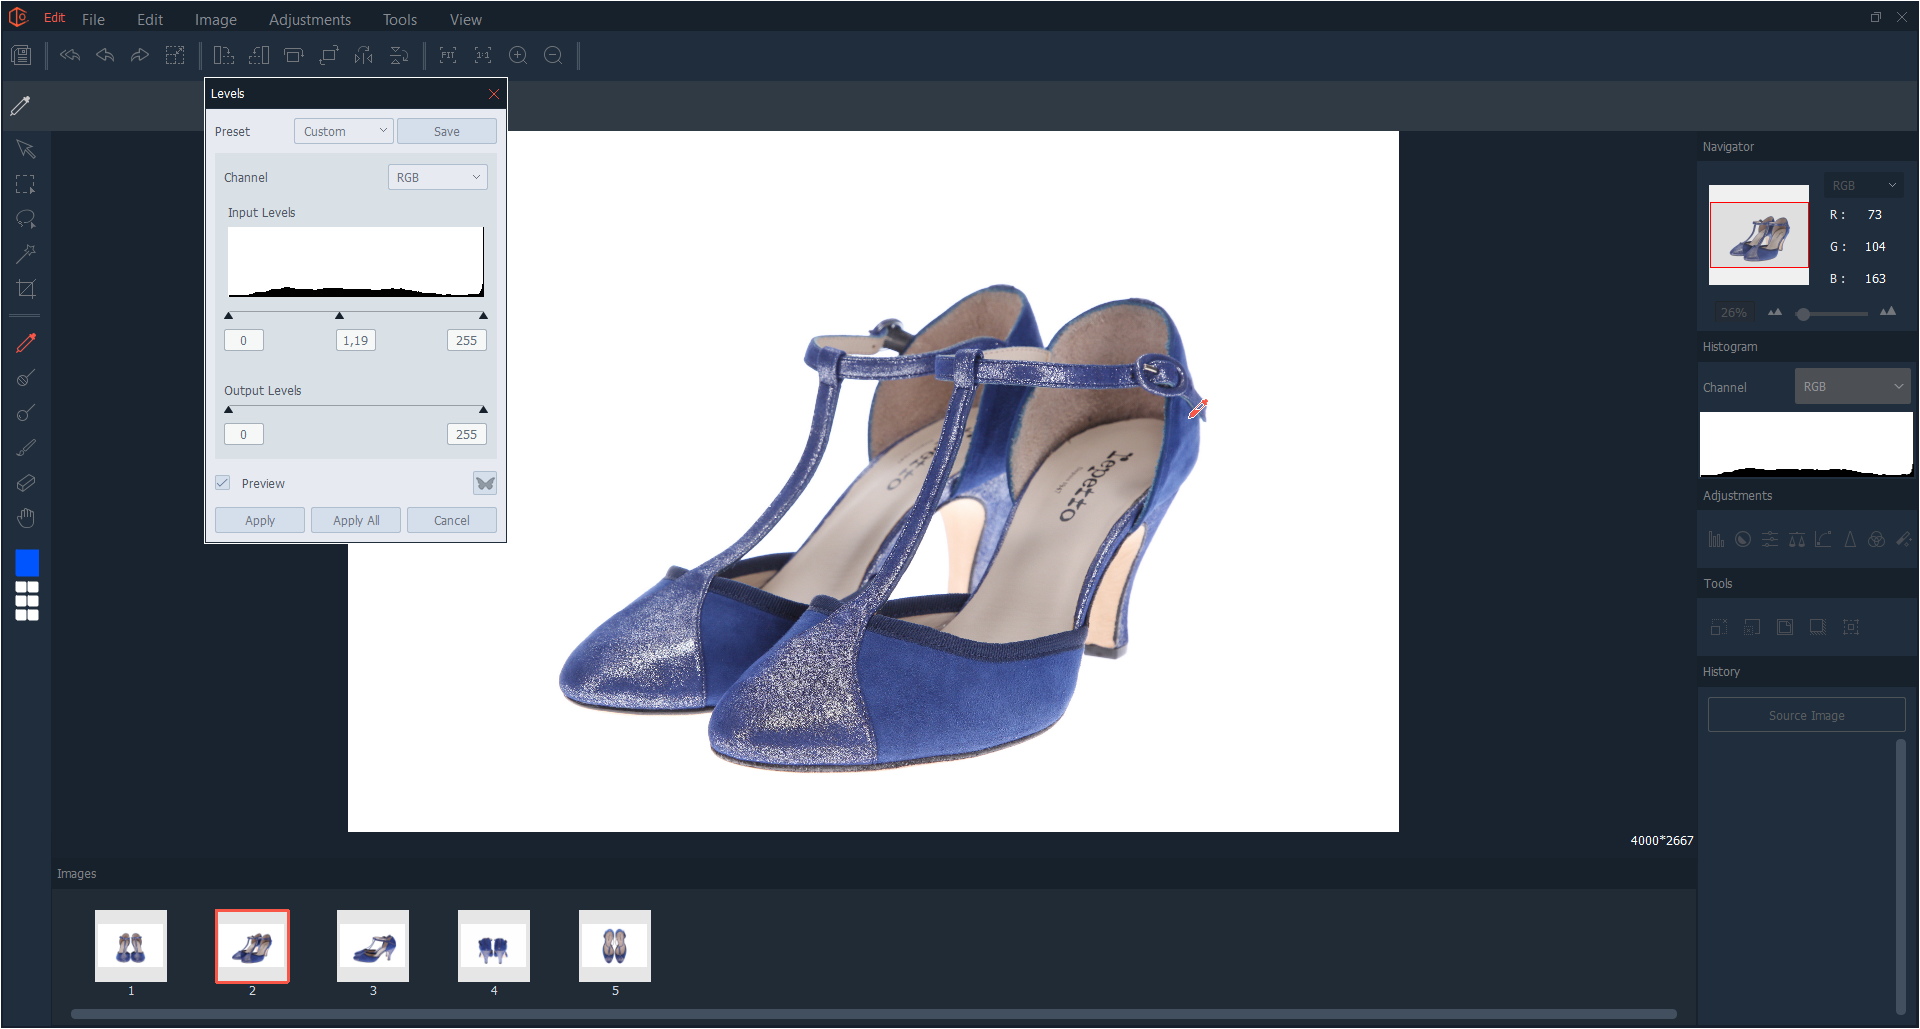 multi-editing of a pair of shoes